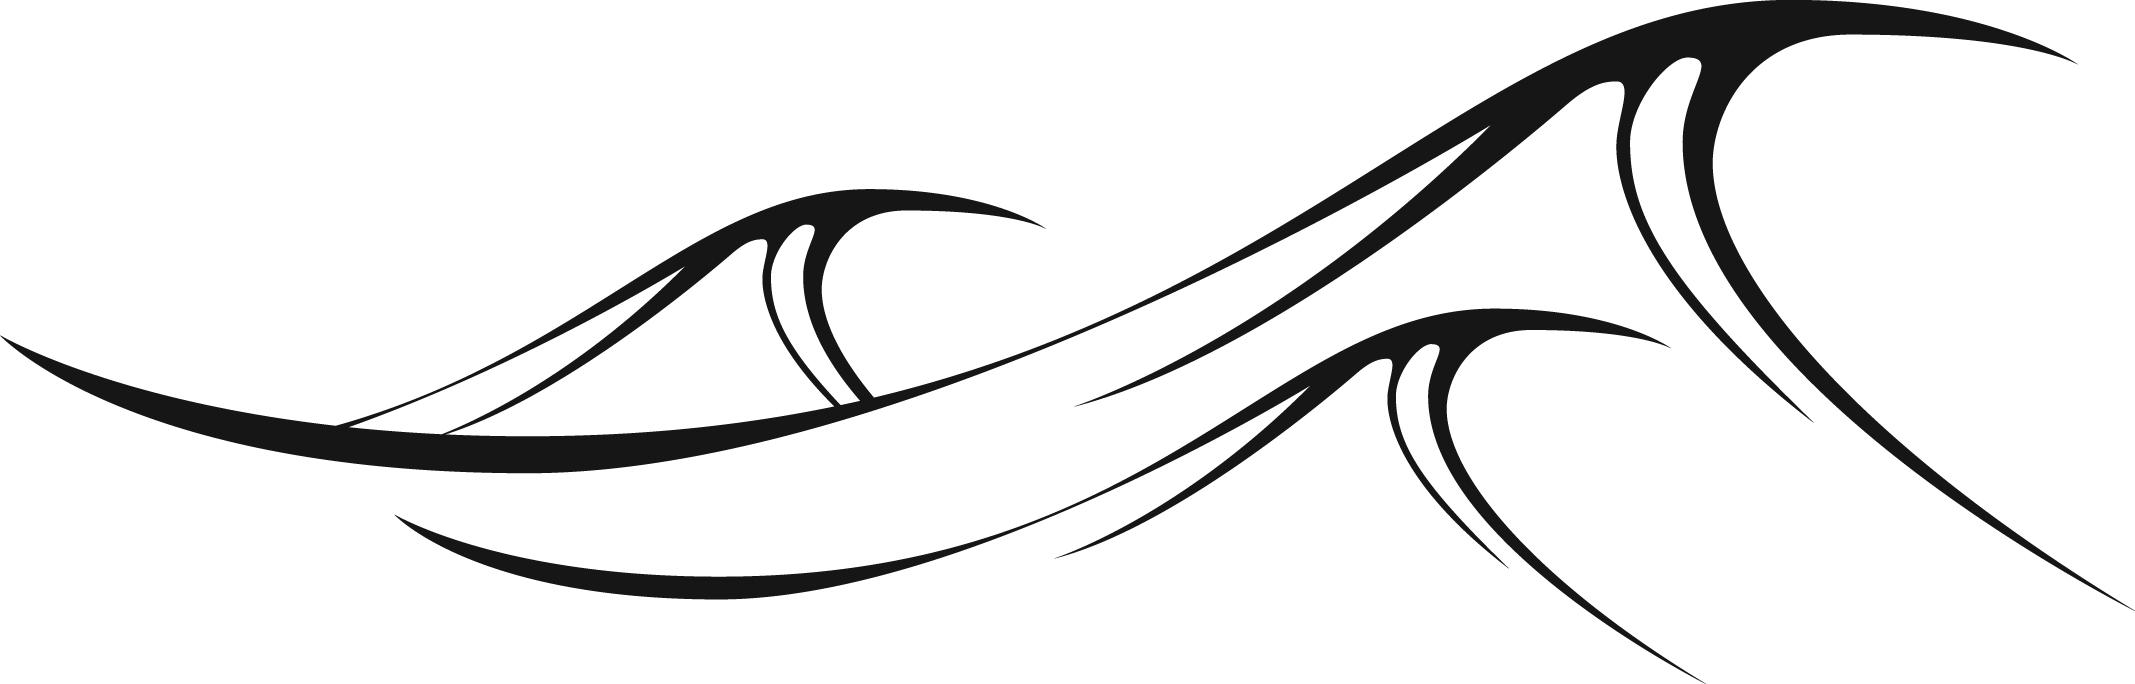 Wave white. Black clipart free download